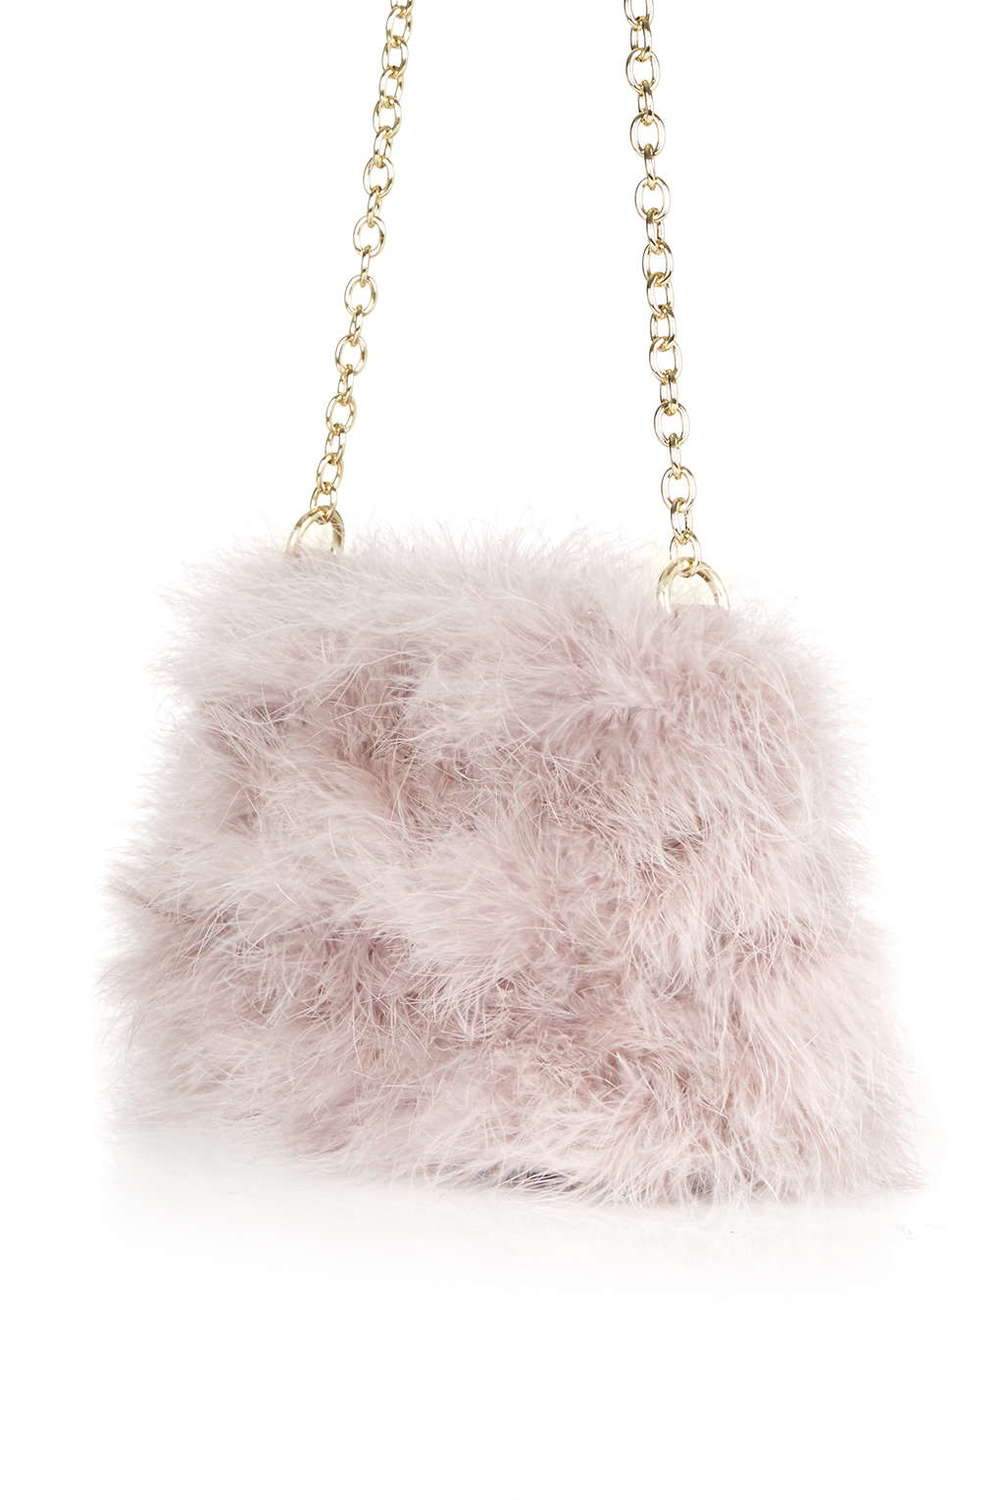 Real Feather Marabou Bag